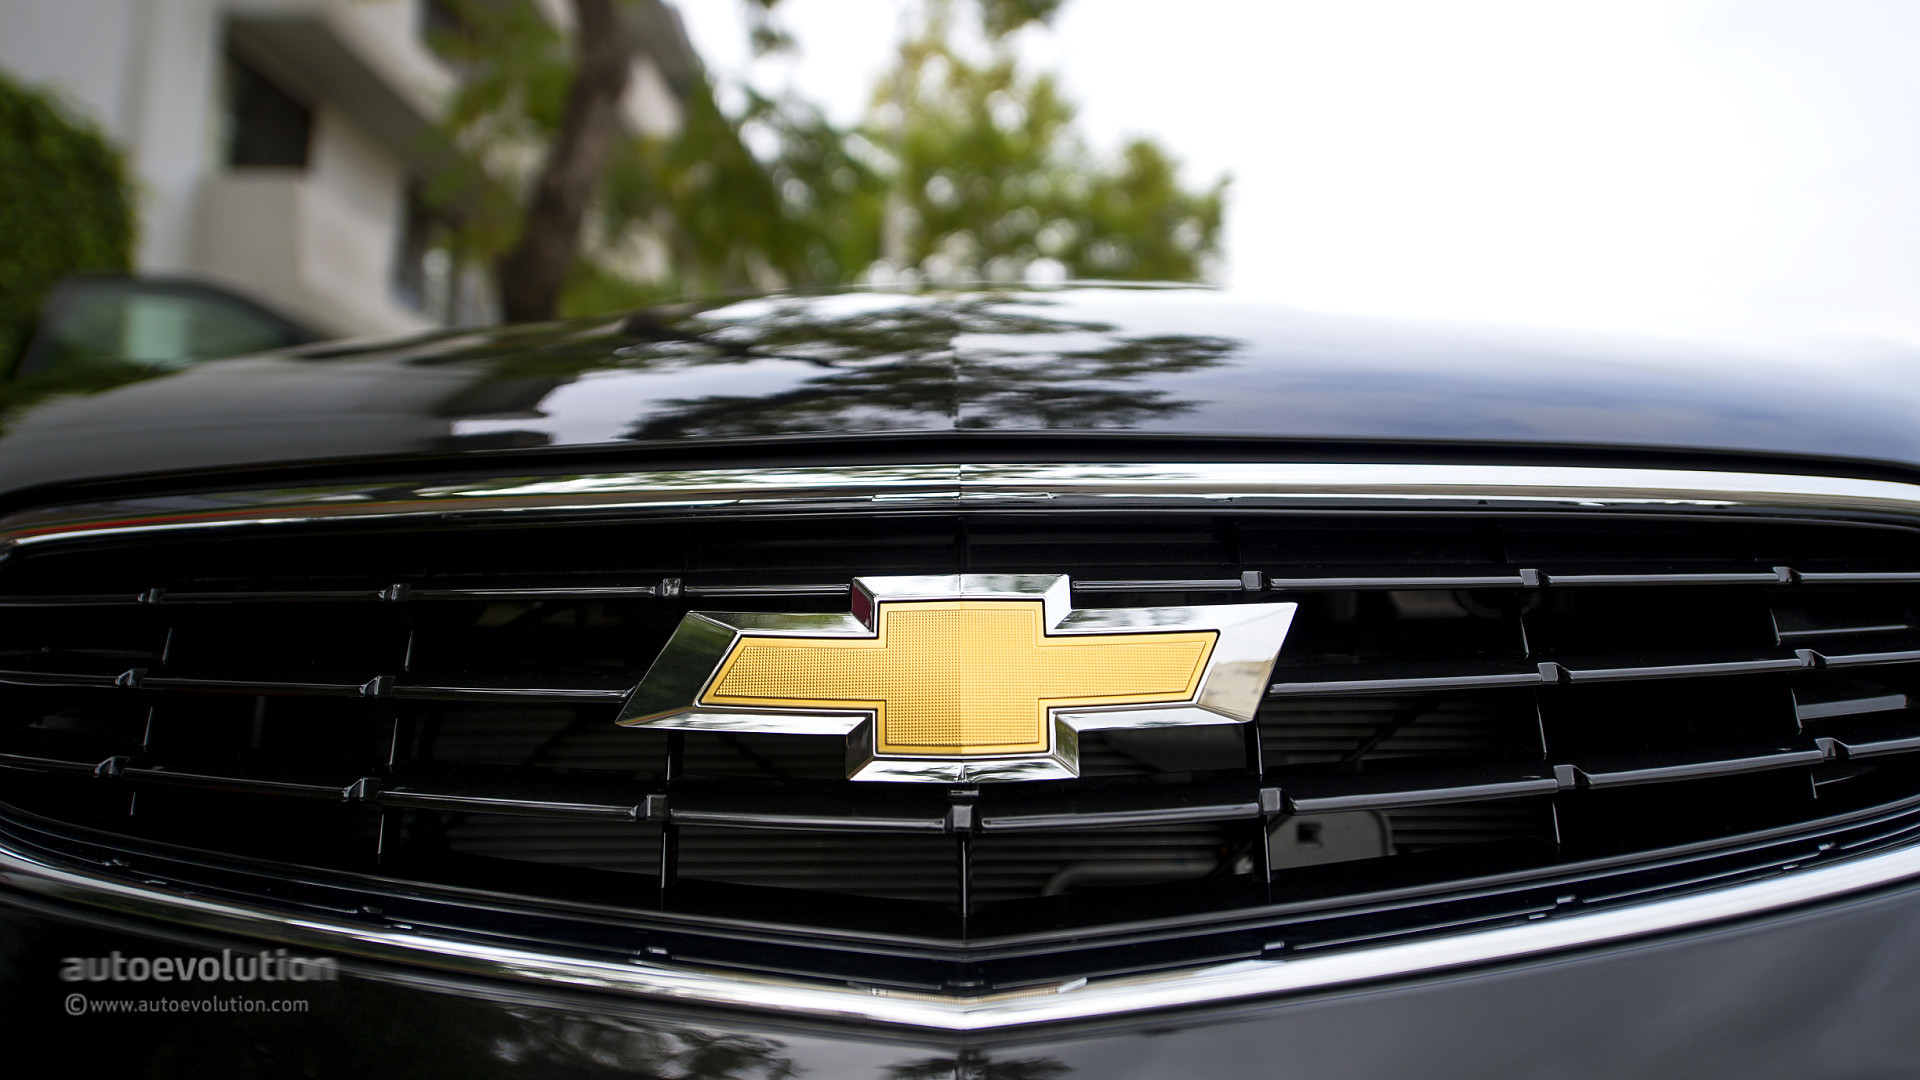 … chevrolet ss hd wallpapers autoevolution; chevrolet bowtie …